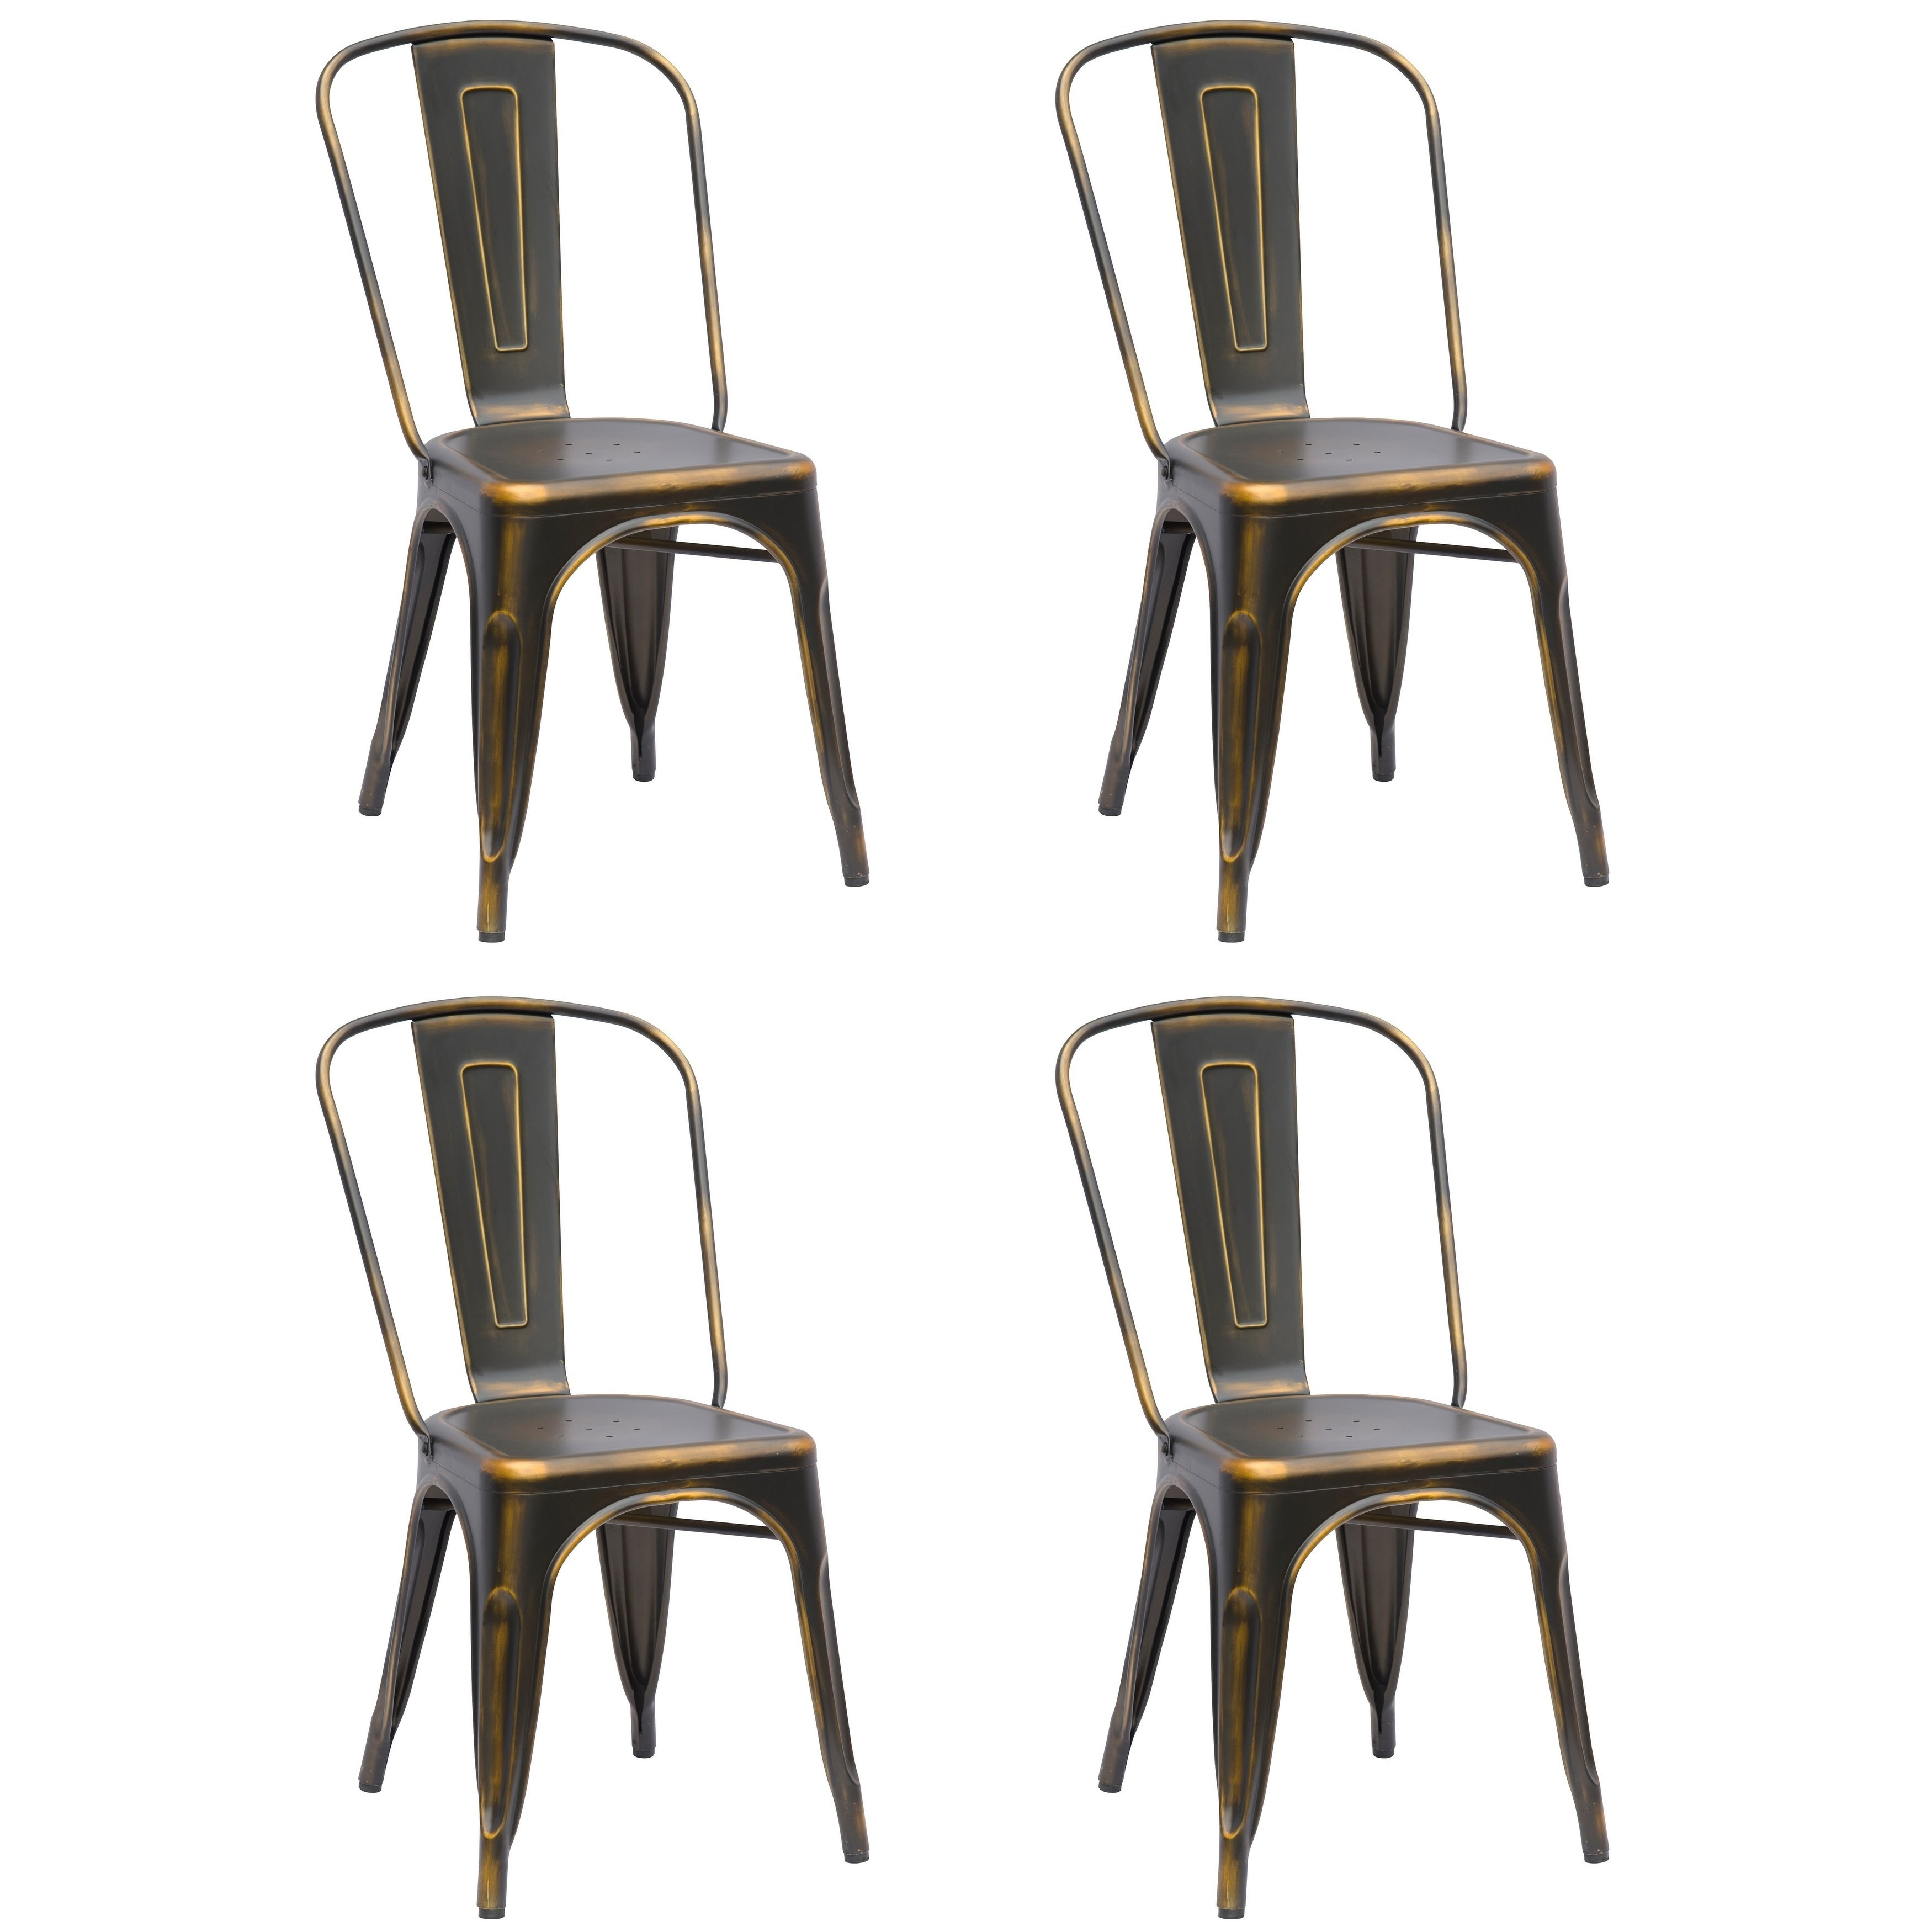 Galvanized Steel Chairs Somette Vintage Galvanized Steel Dining Chair Set Of 4